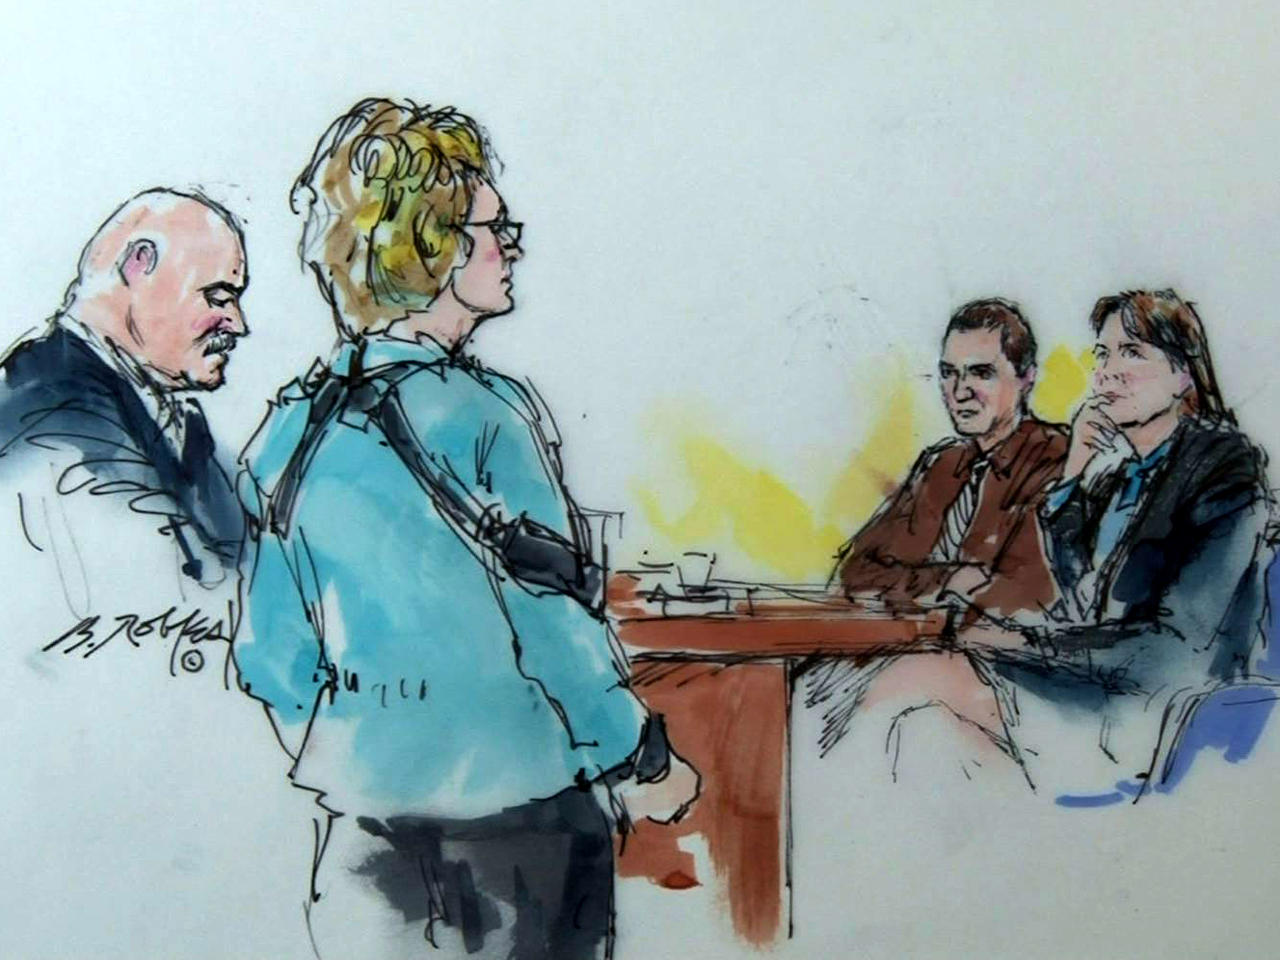 Mark Kelly, left, walks with his wife, former Rep. Gabrielle Giffords, near Jared Lee Loughner and one of his attorneys, Judy Clarke, in federal court in Tucson, Ariz., Nov. 8, 2012, in this sketch by Bill Robles.